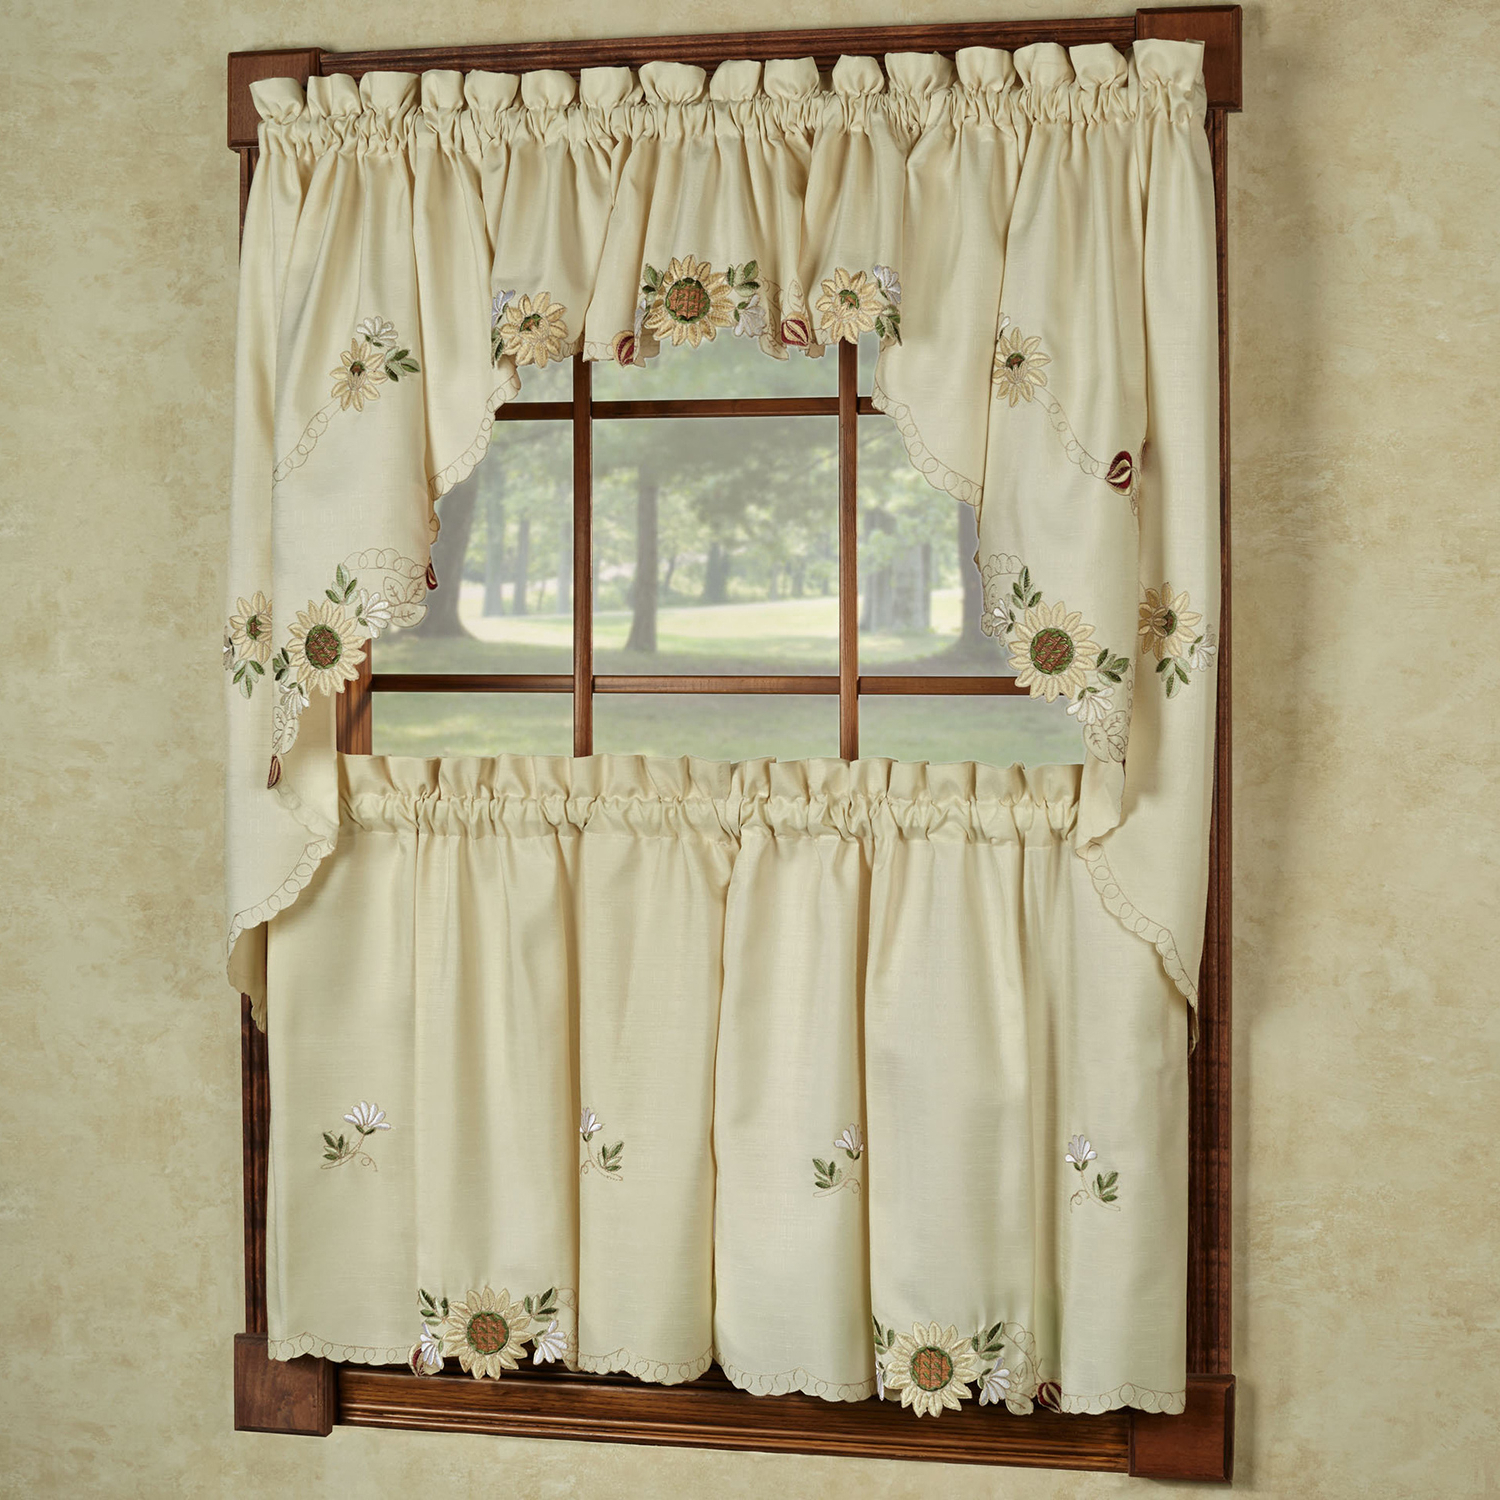 """Favorite Details About Sunflower Cream Embroidered Kitchen Curtains 24"""" Tier, Swag & Valance Set Regarding Embroidered Ladybugs Window Curtain Pieces (View 15 of 20)"""